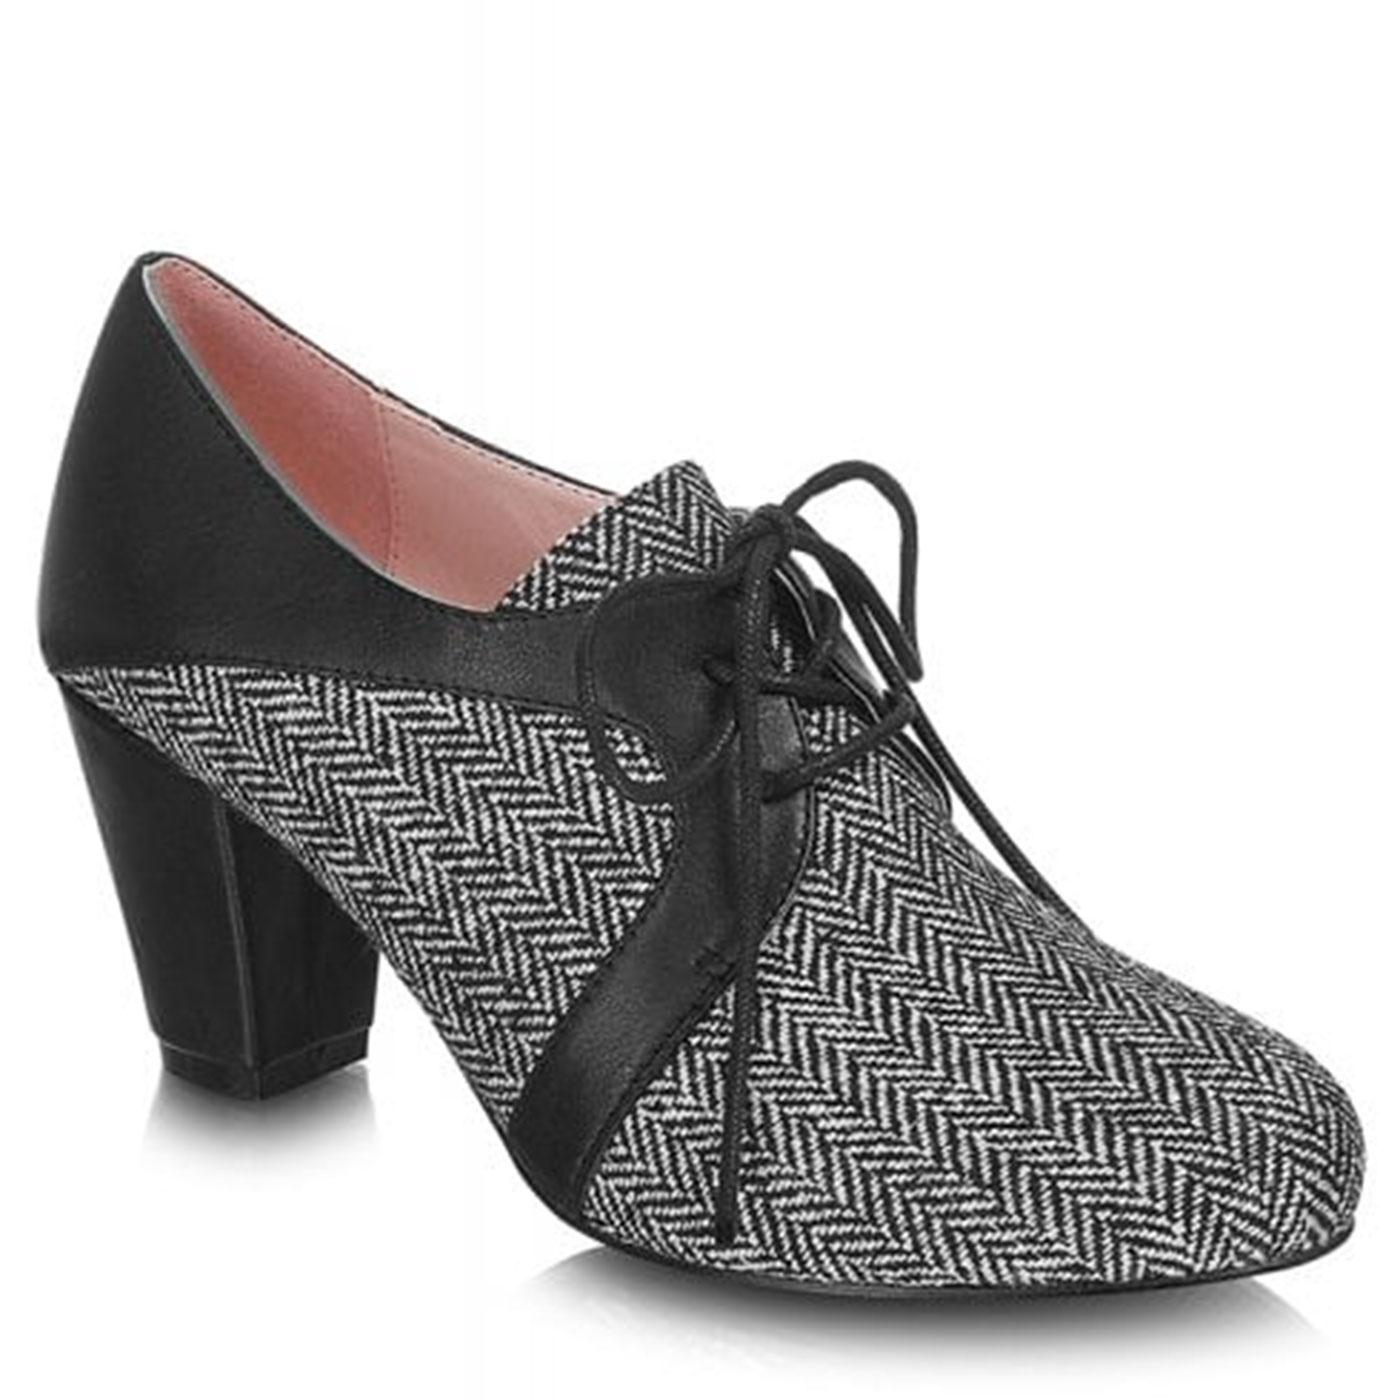 Alex LULU HUN 1940s Herringbone Shoe-Boots in Grey